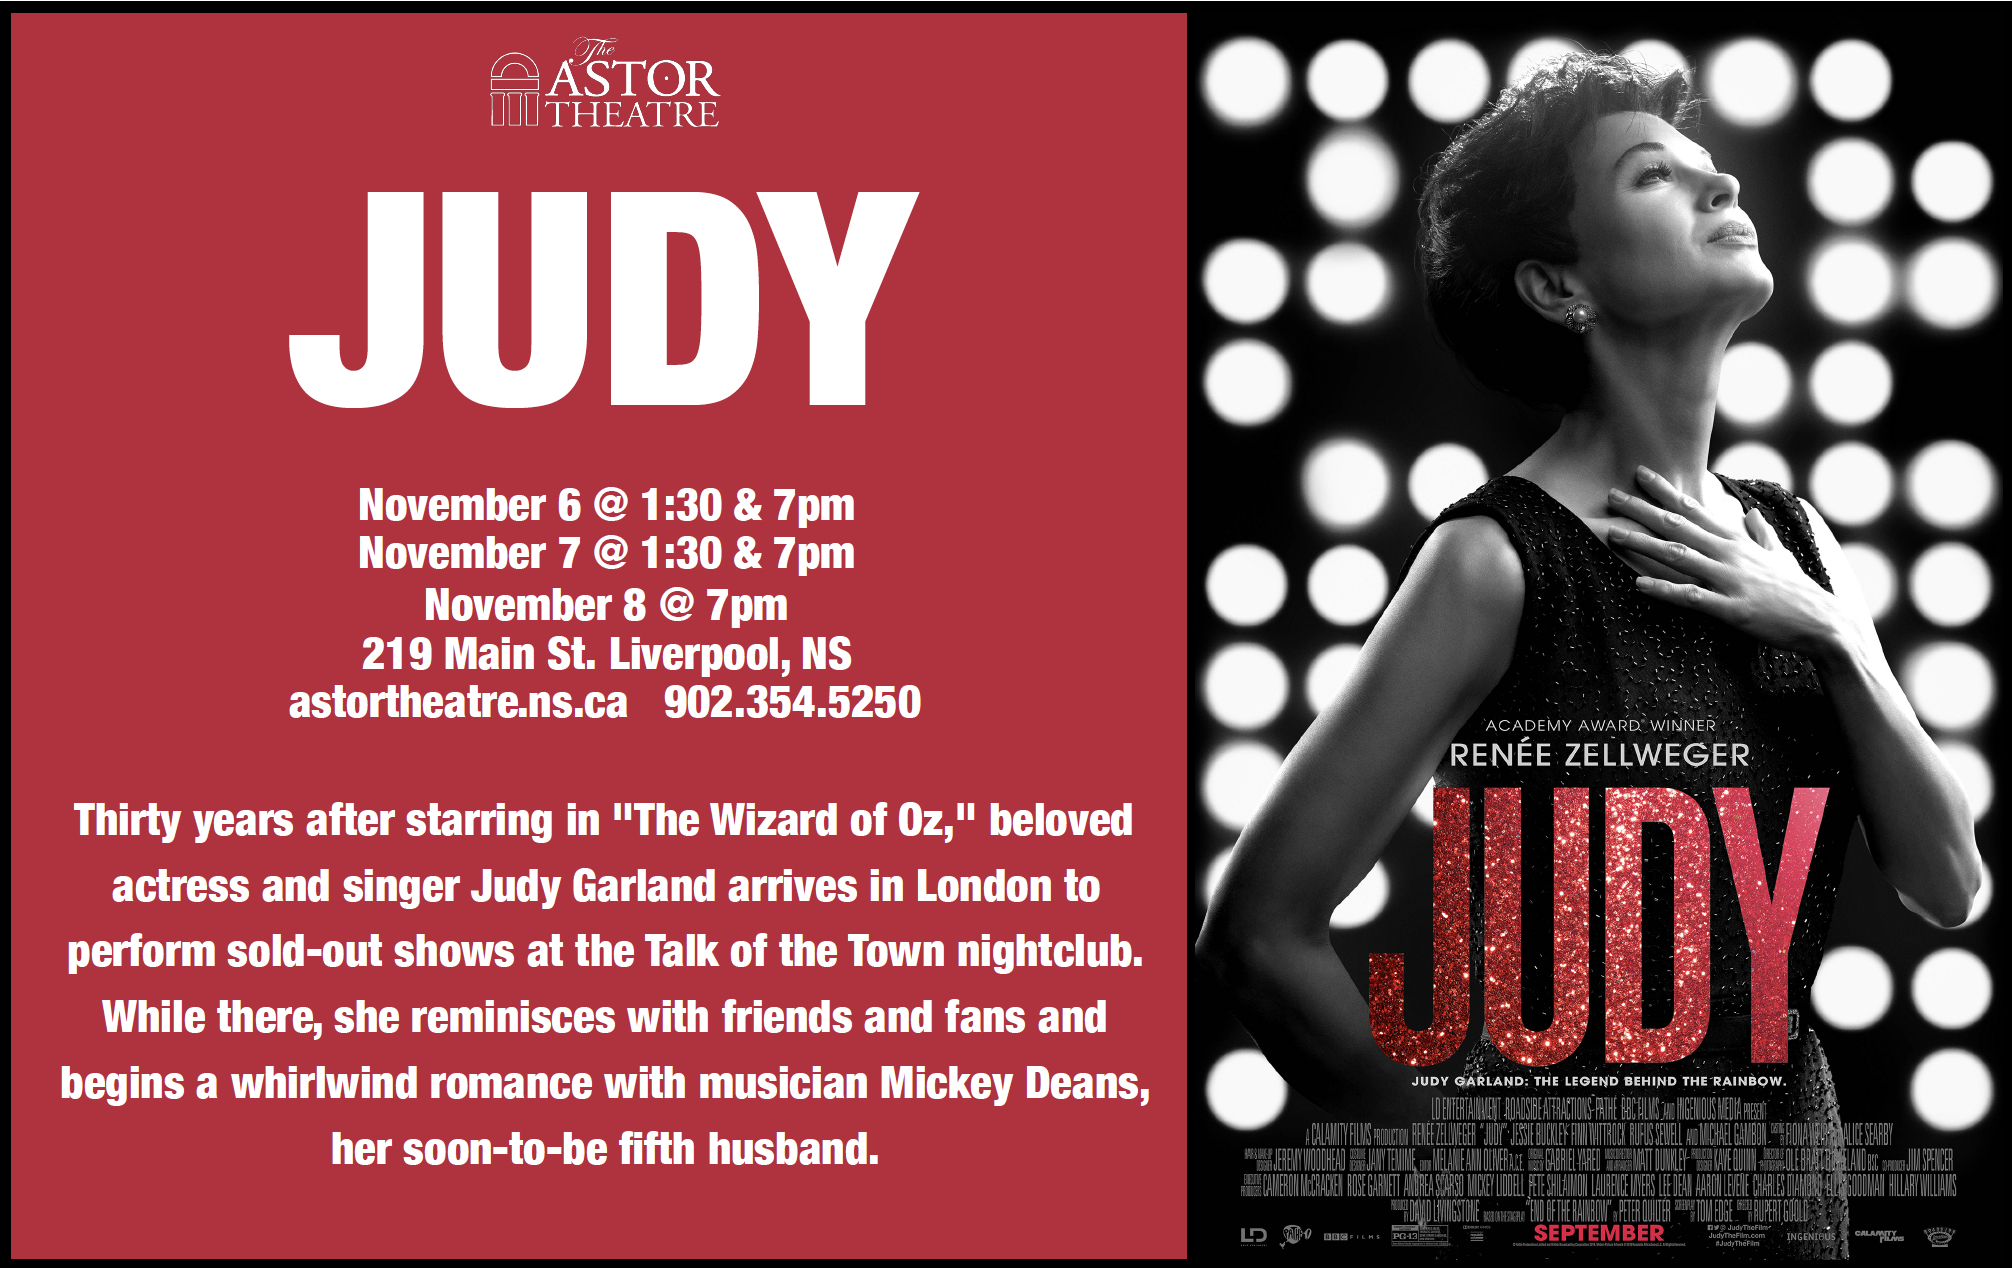 Judy Wed, Thurs, Fri, Sun@7pm Wed, Thurs, Sat@1:30pm